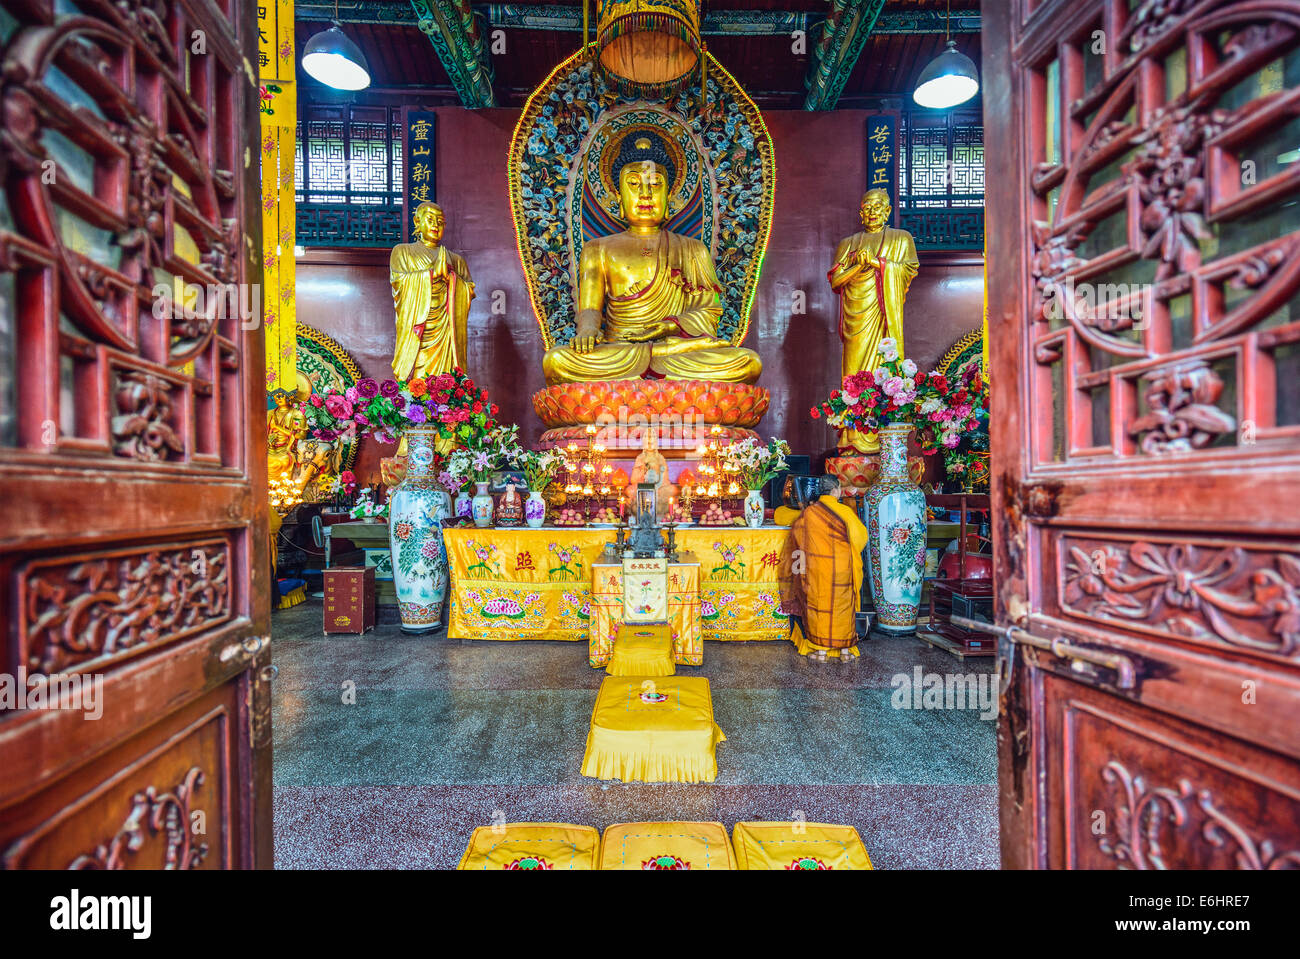 Hongfu Temple shrine of Guiyang, China - Stock Image